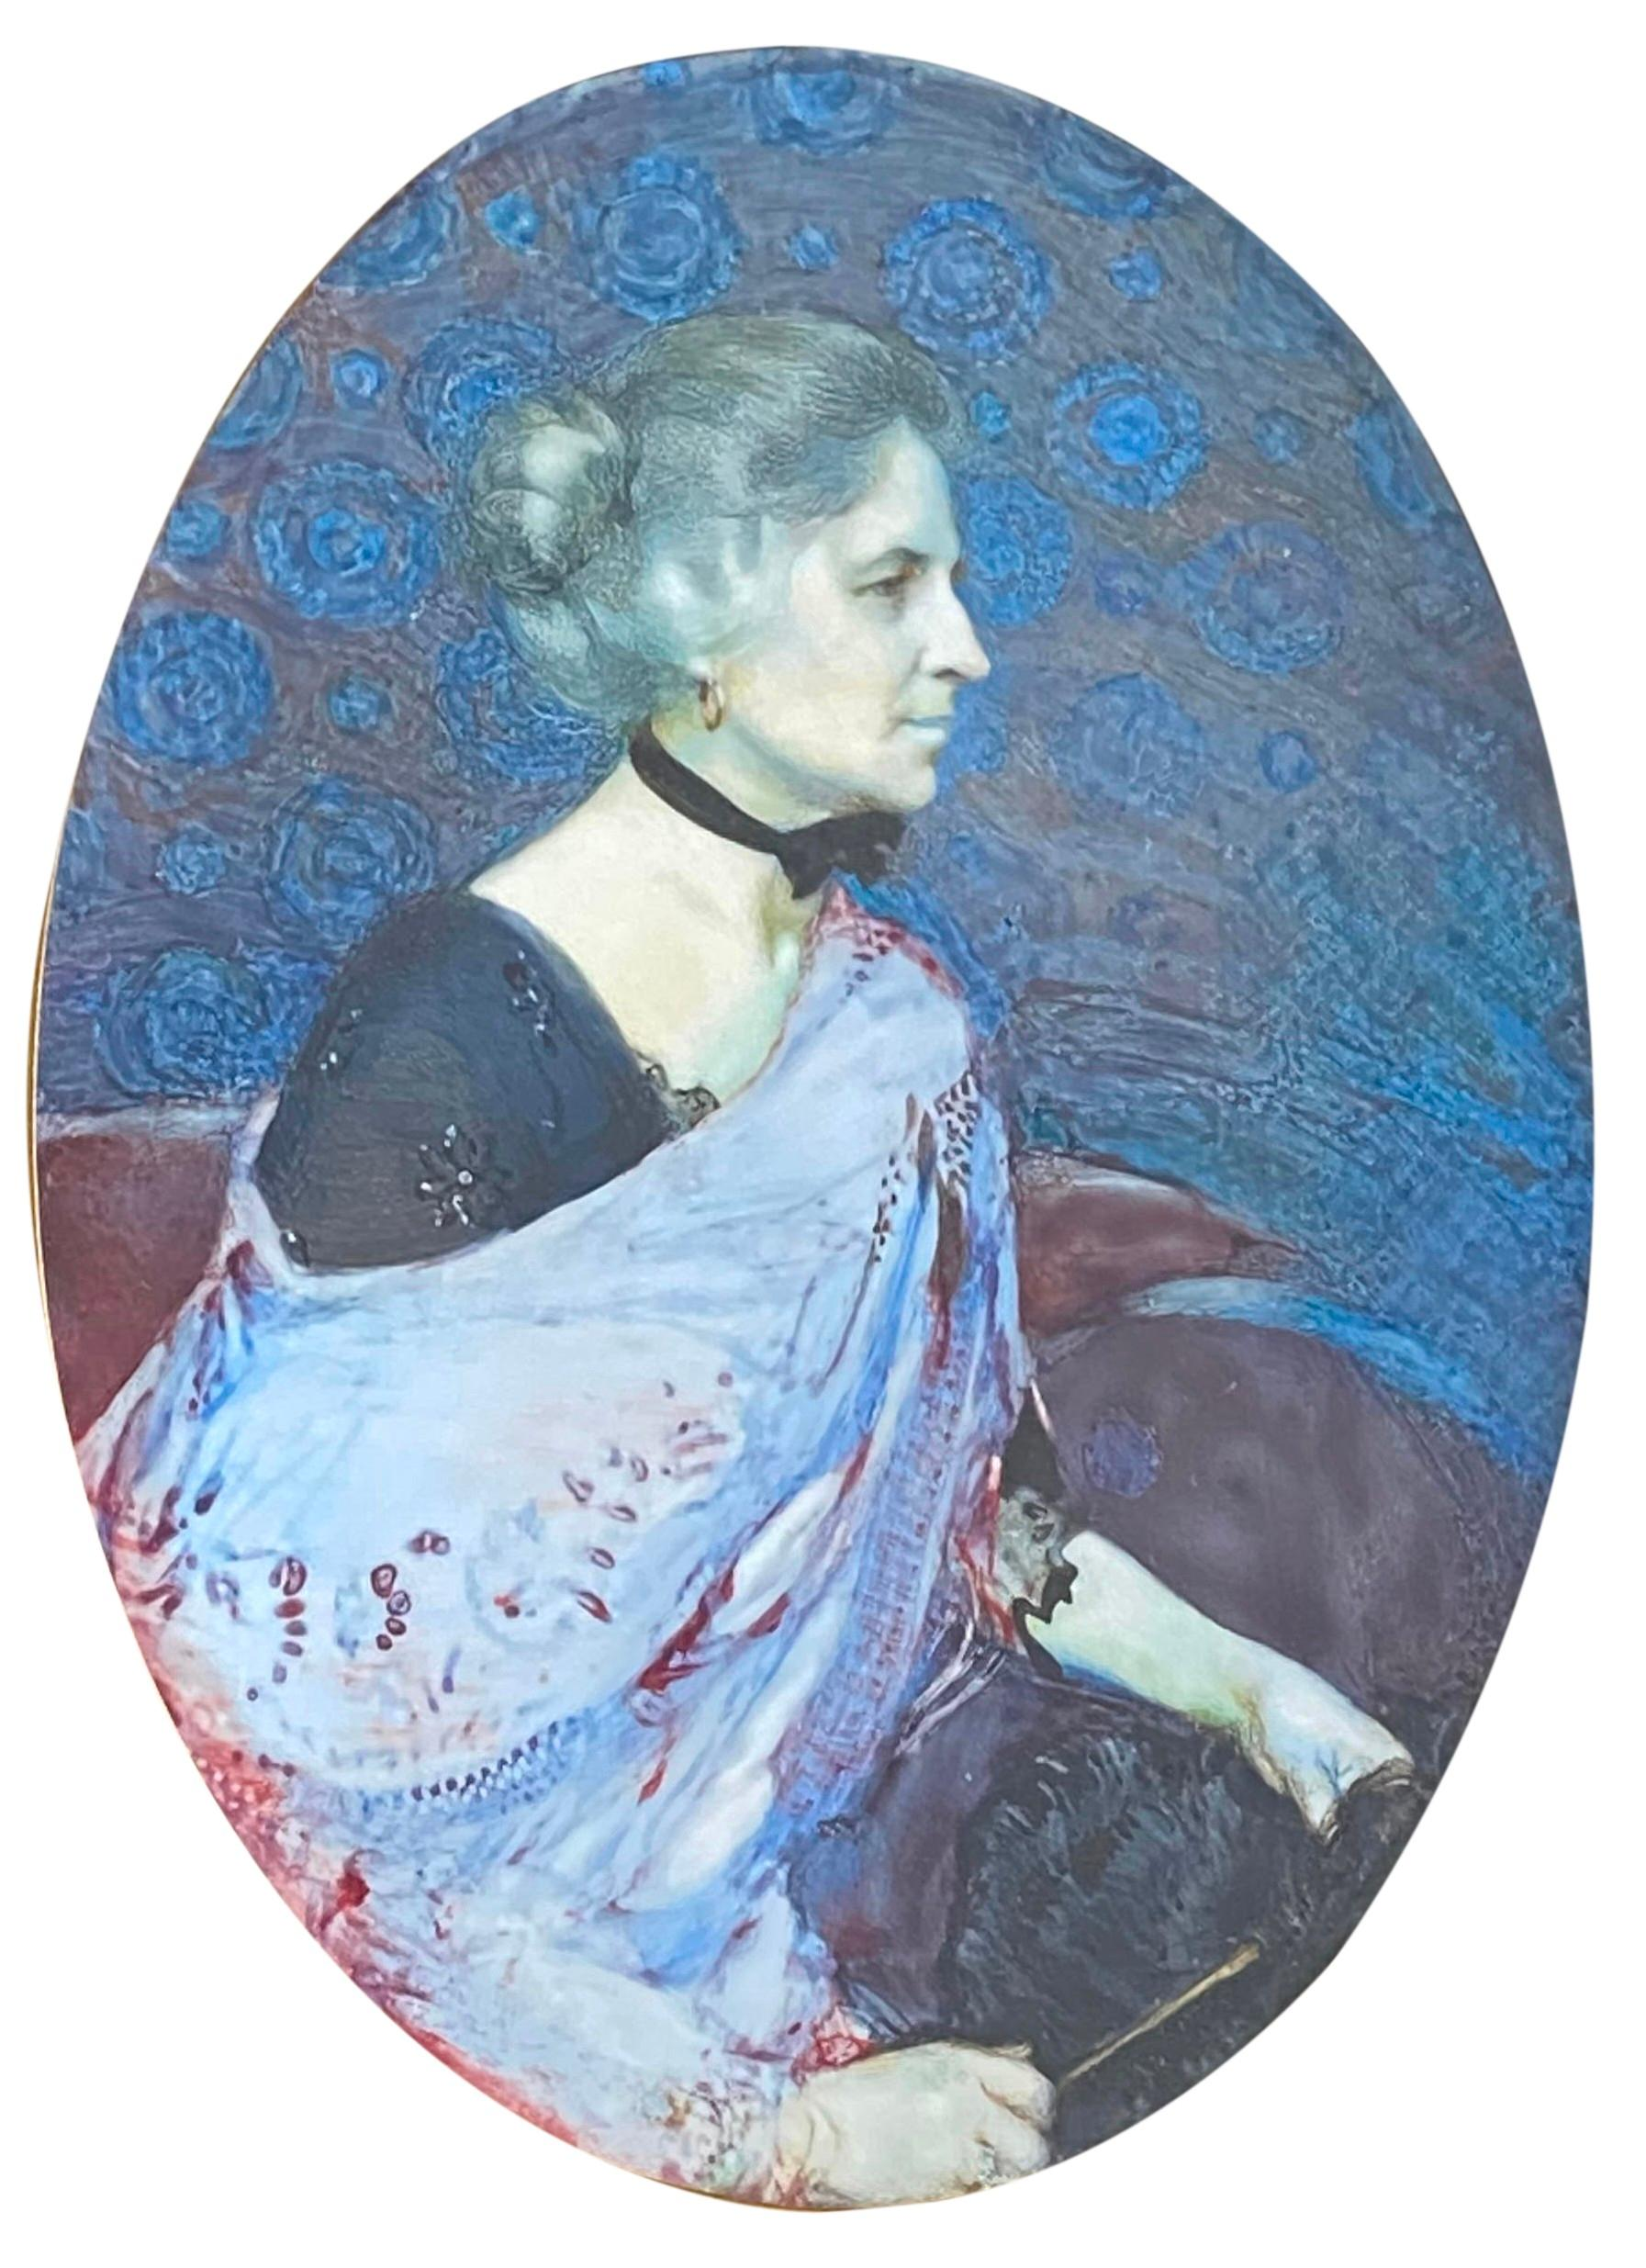 LAURA COOMBS HILLS, (American, 1859-1952), Mrs. George W. Chadwick, 1914, watercolor, 5 1/2 x 4 in., frame: 8 x 6 1/2 in.